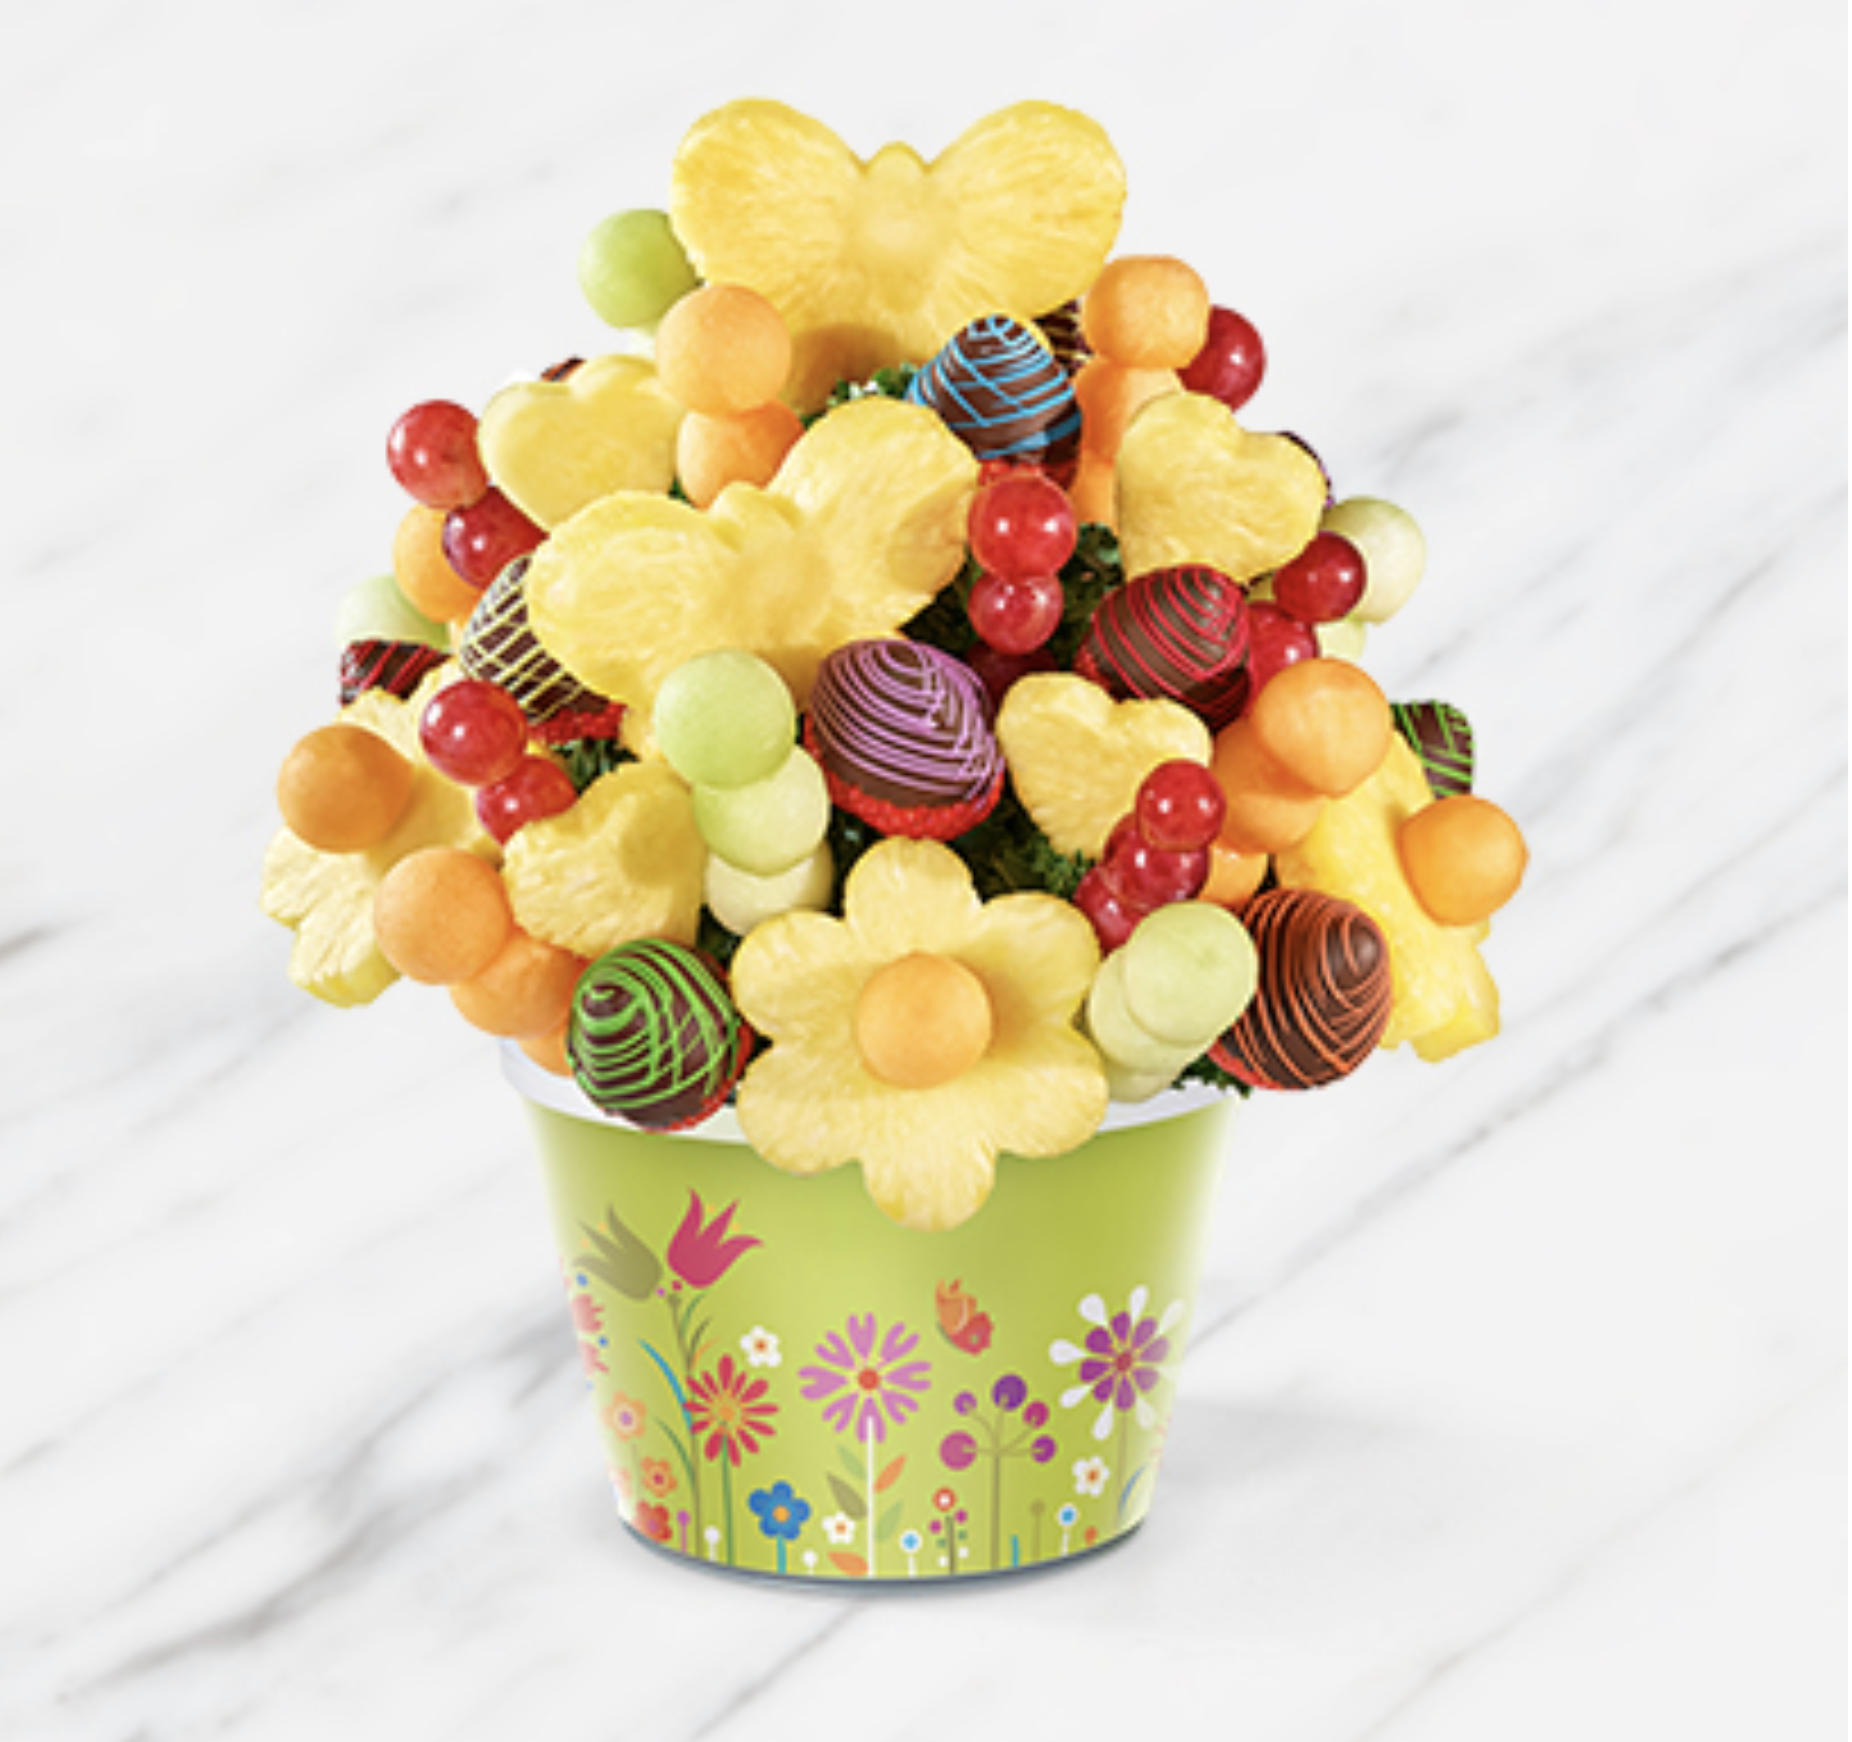 Fruit basket with some fruits in butterflies and heart shapes